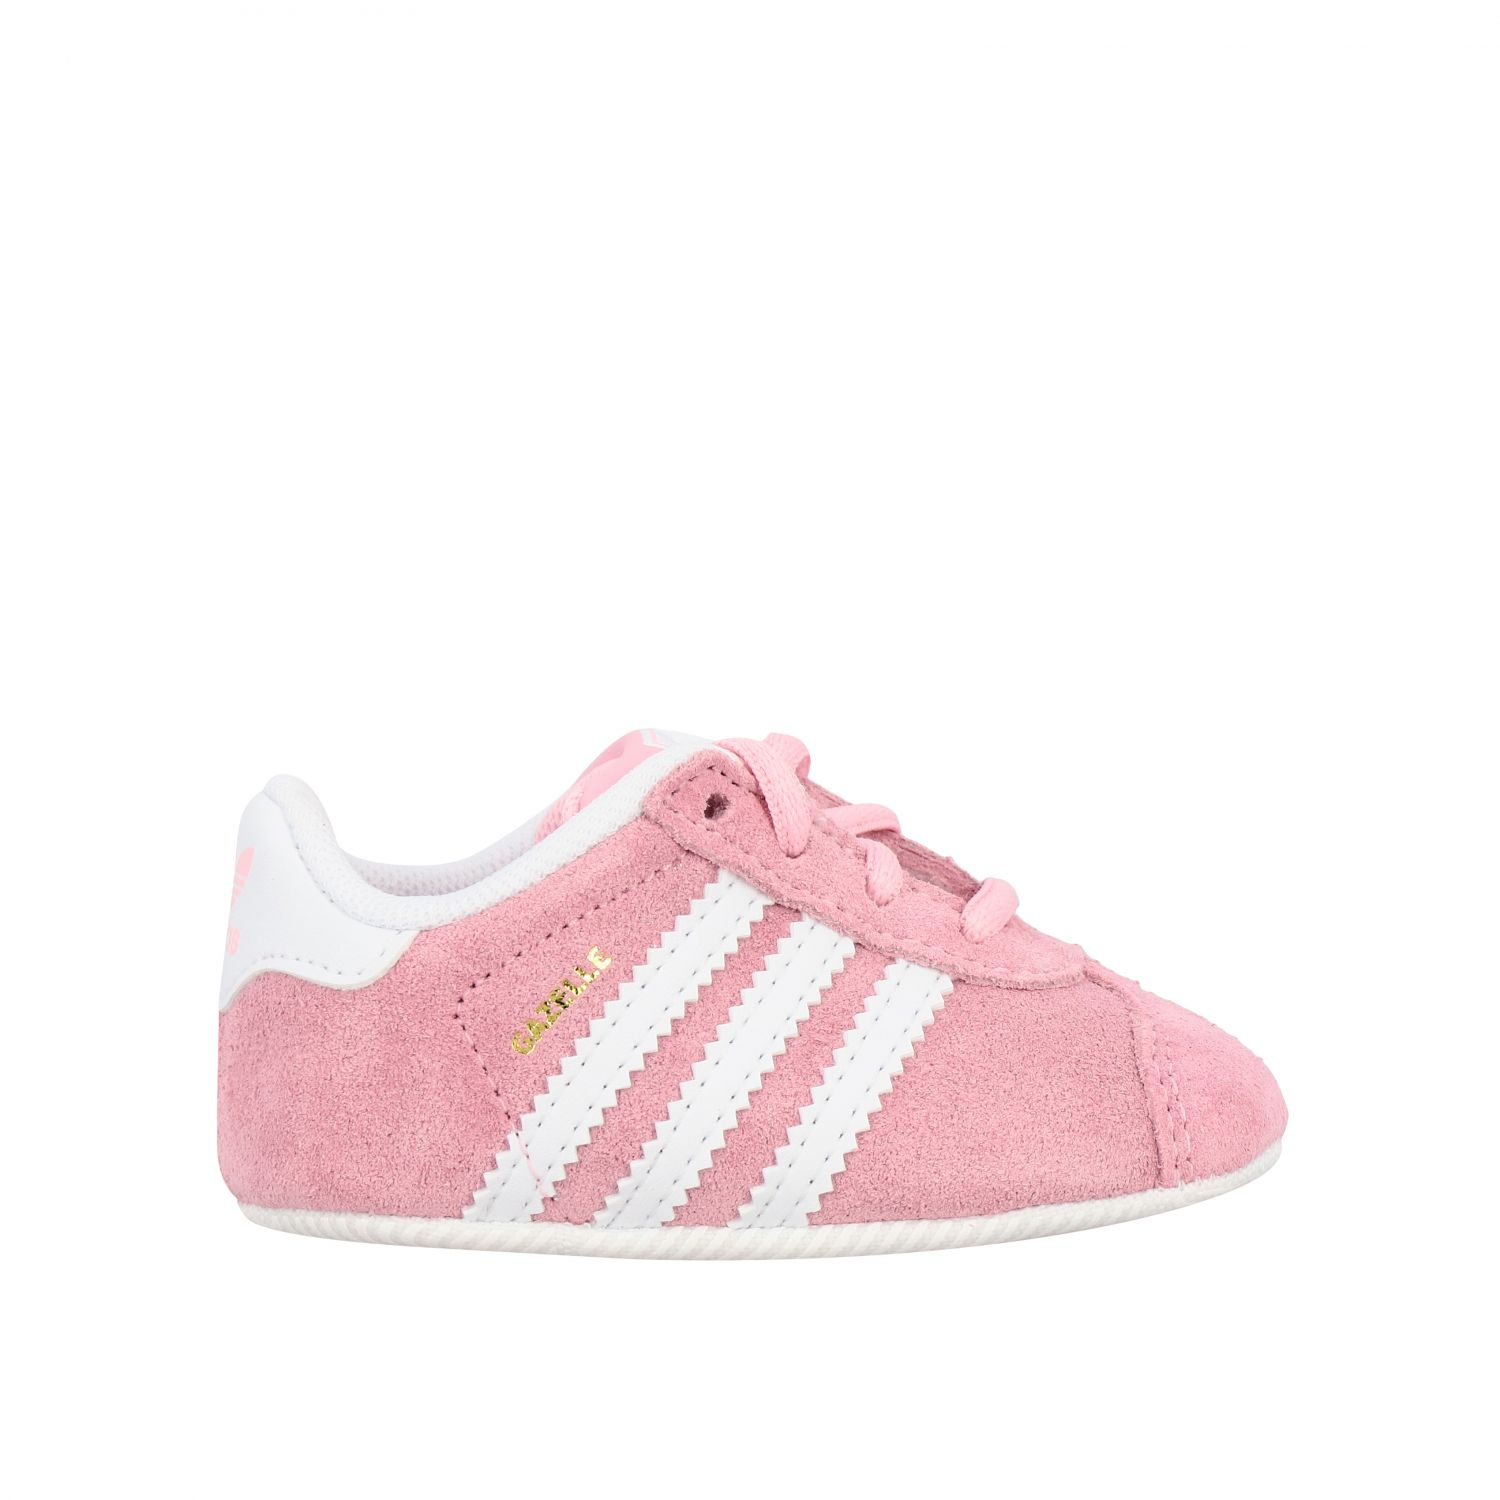 Baskets Gazelle Crib Adidas Originals en daim et cuir rose 1